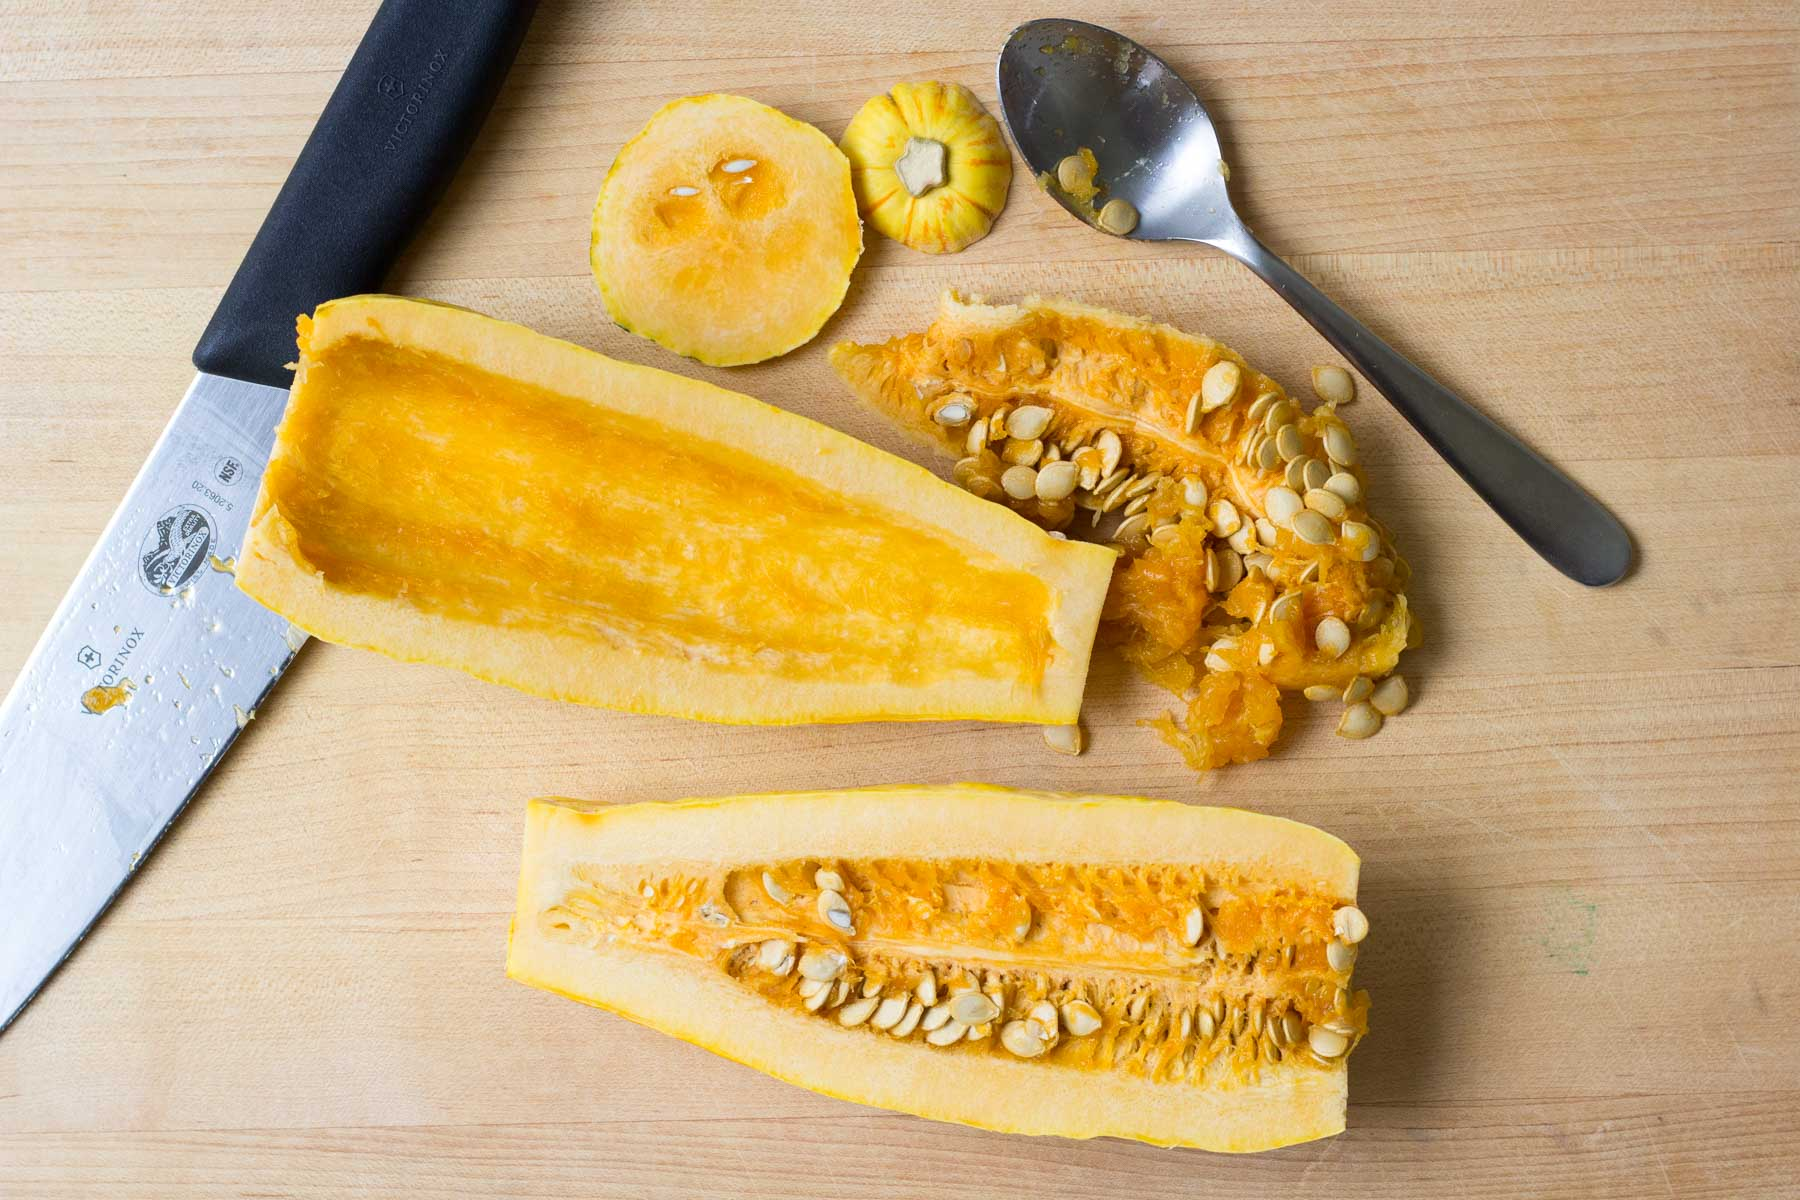 squash halves with seeds scooped out of one half